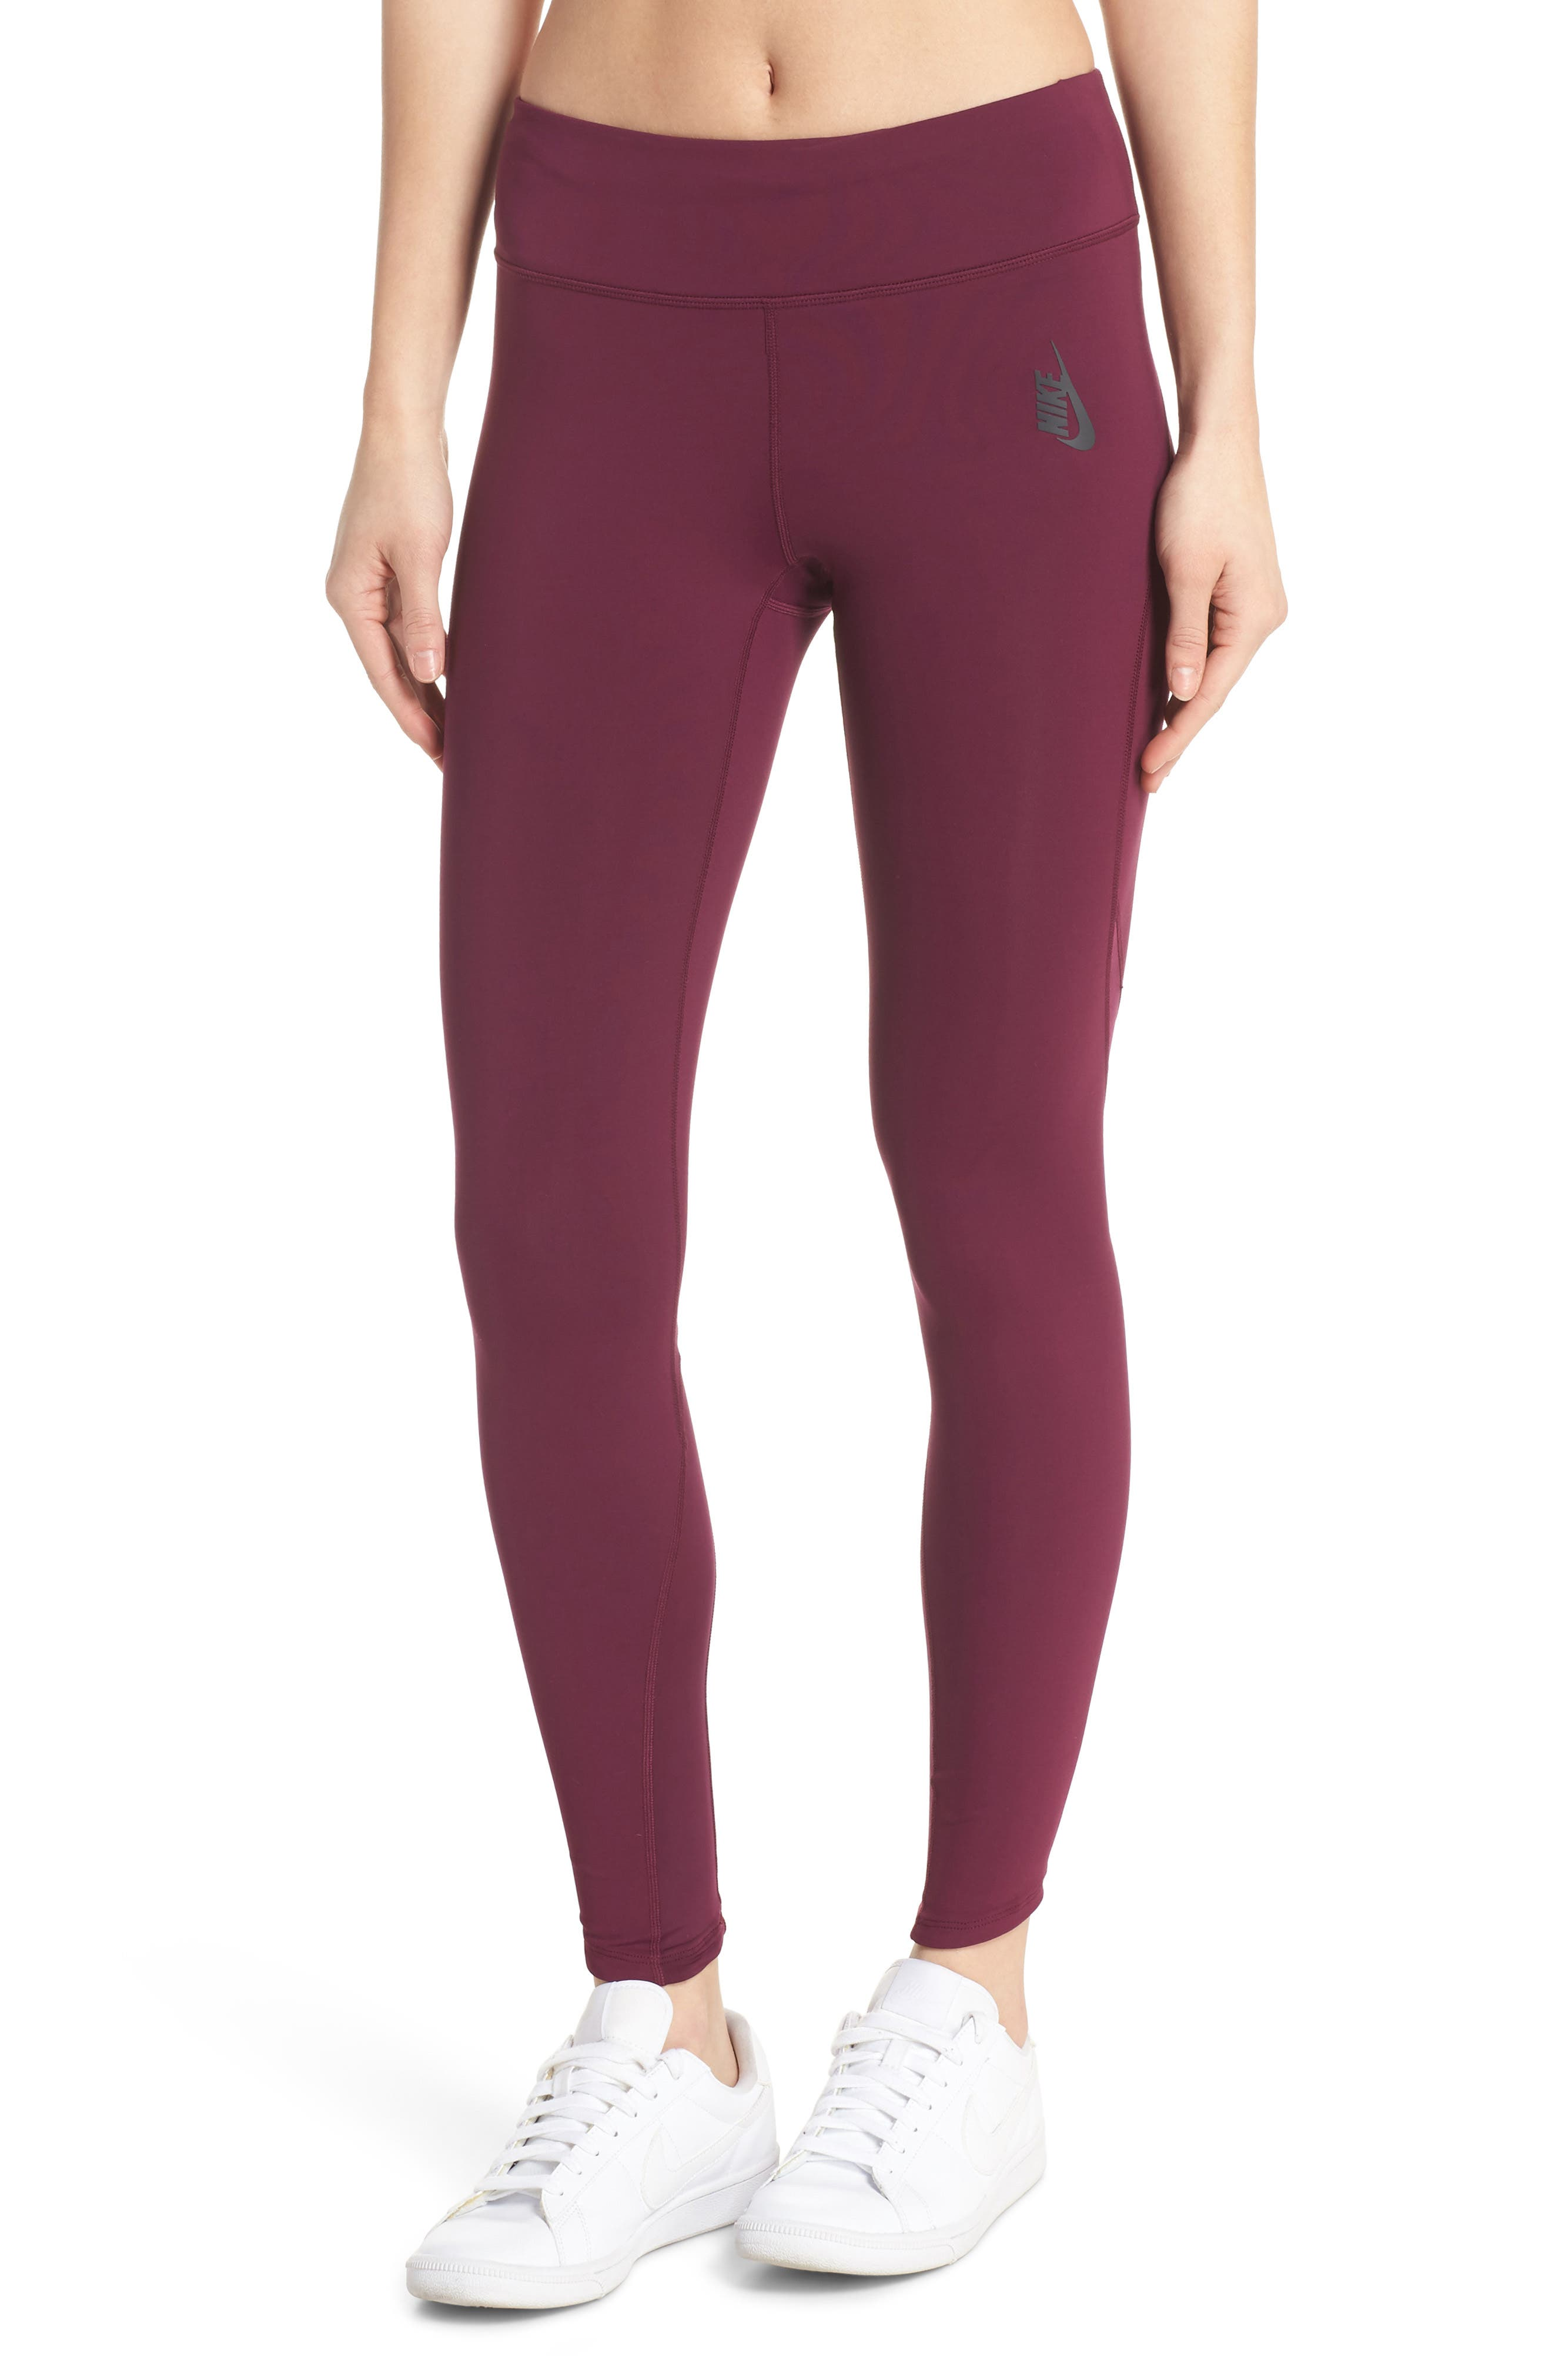 Nike NikeLab Collection Dri-FIT Women's Tights